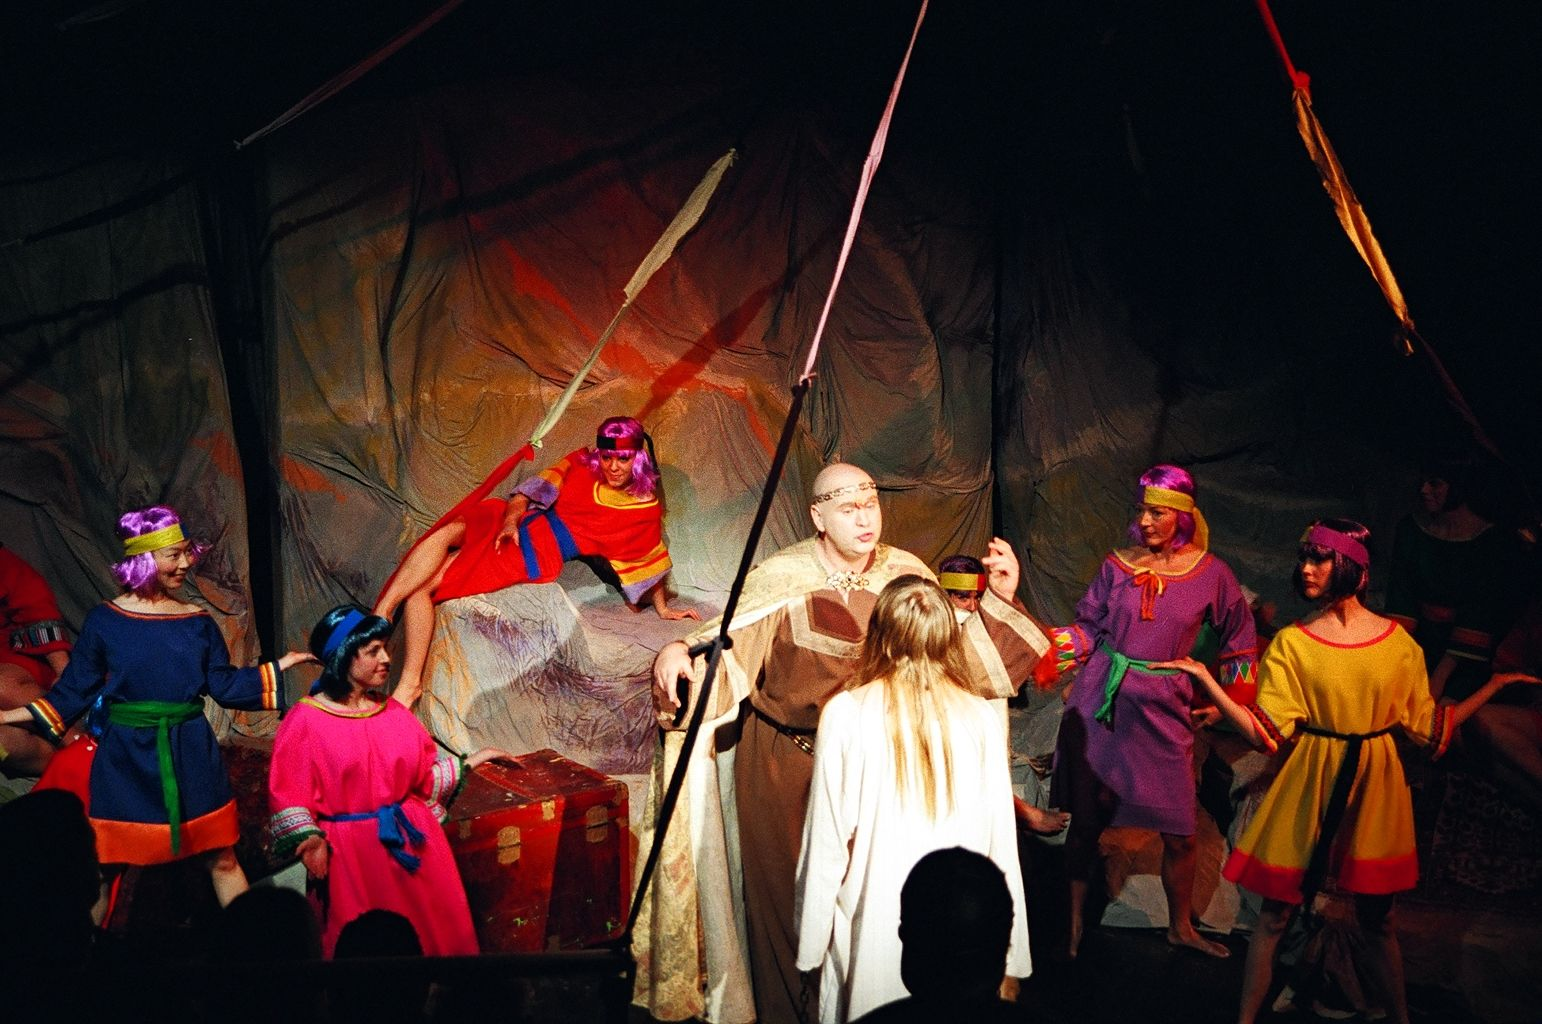 Esther Huang, Stephanie Norn, Megan Lenz, Clyde Kelly, Darren Stewart and Sherry West in Jesus Christ Superstar